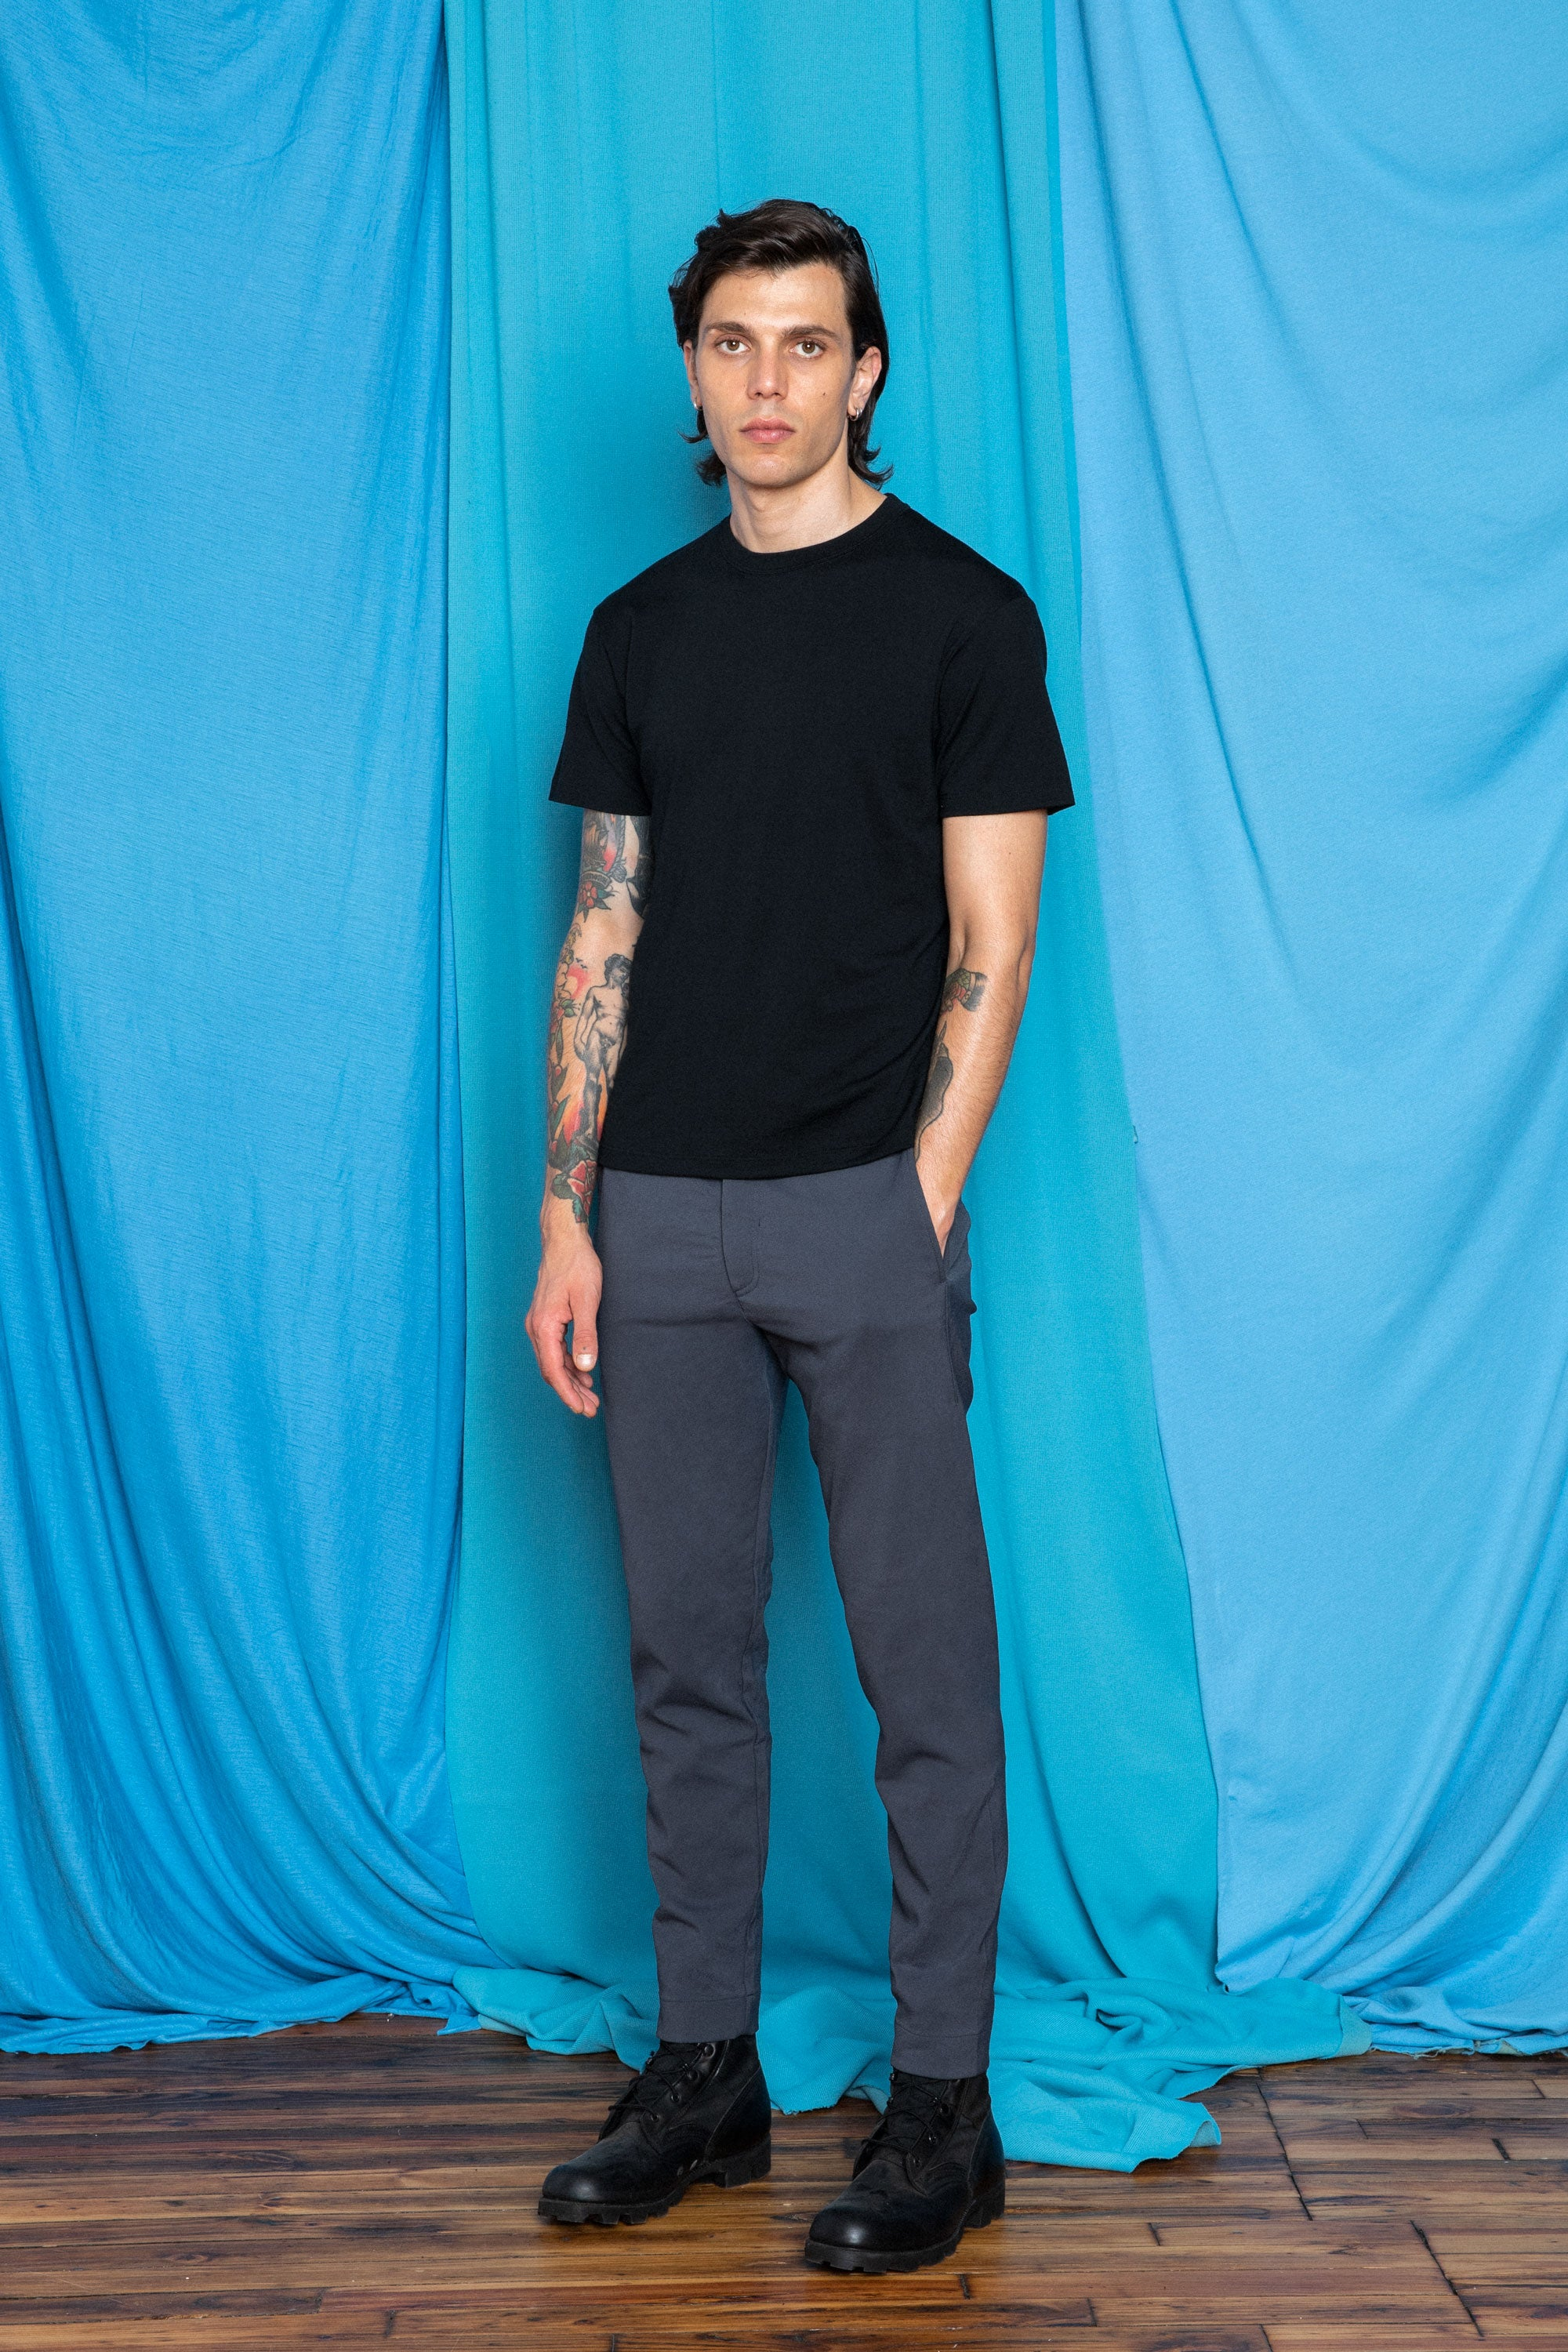 Daniele in the Bluetint Gray Workdarts and a Black Ultrafine Merino Cut Two T-Shirt , front view